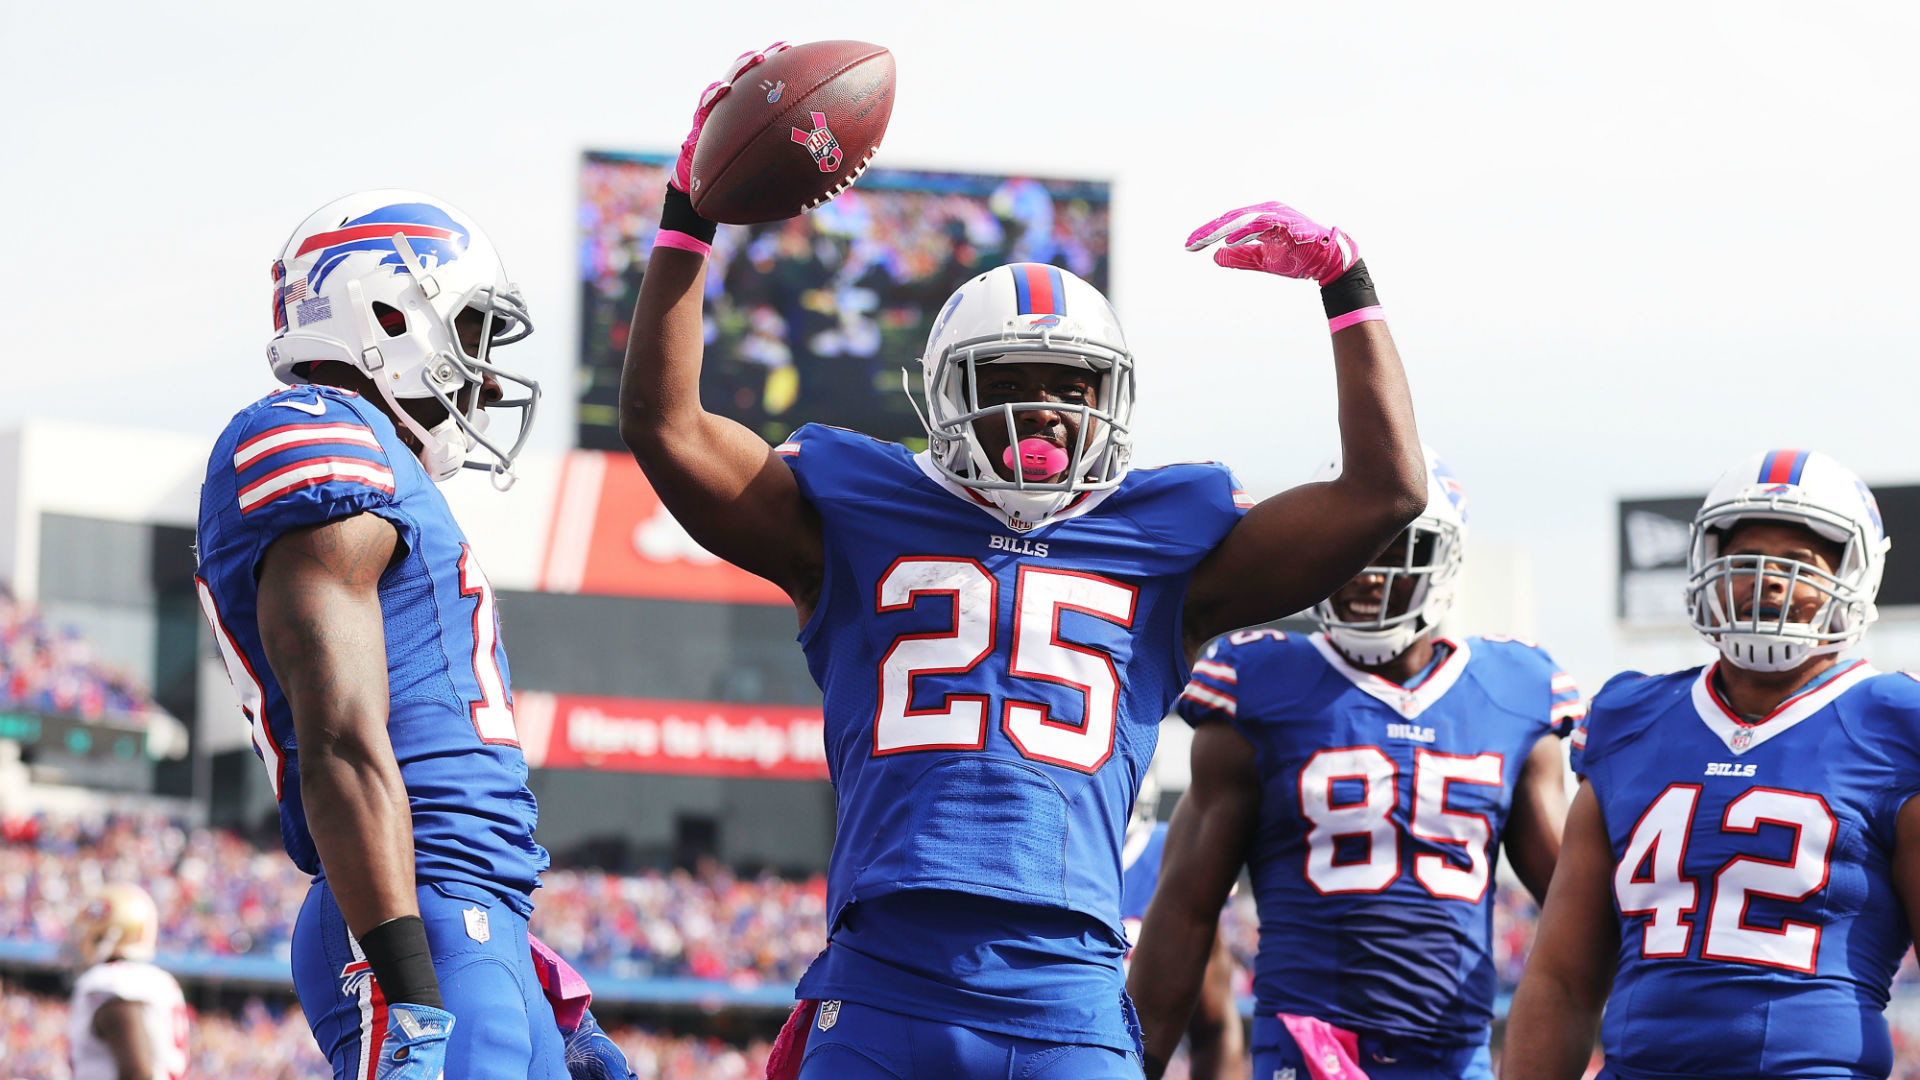 LeSean McCoy scares Bills fans with 'Buffalo was so special' tweet | NFL |  Sporting News